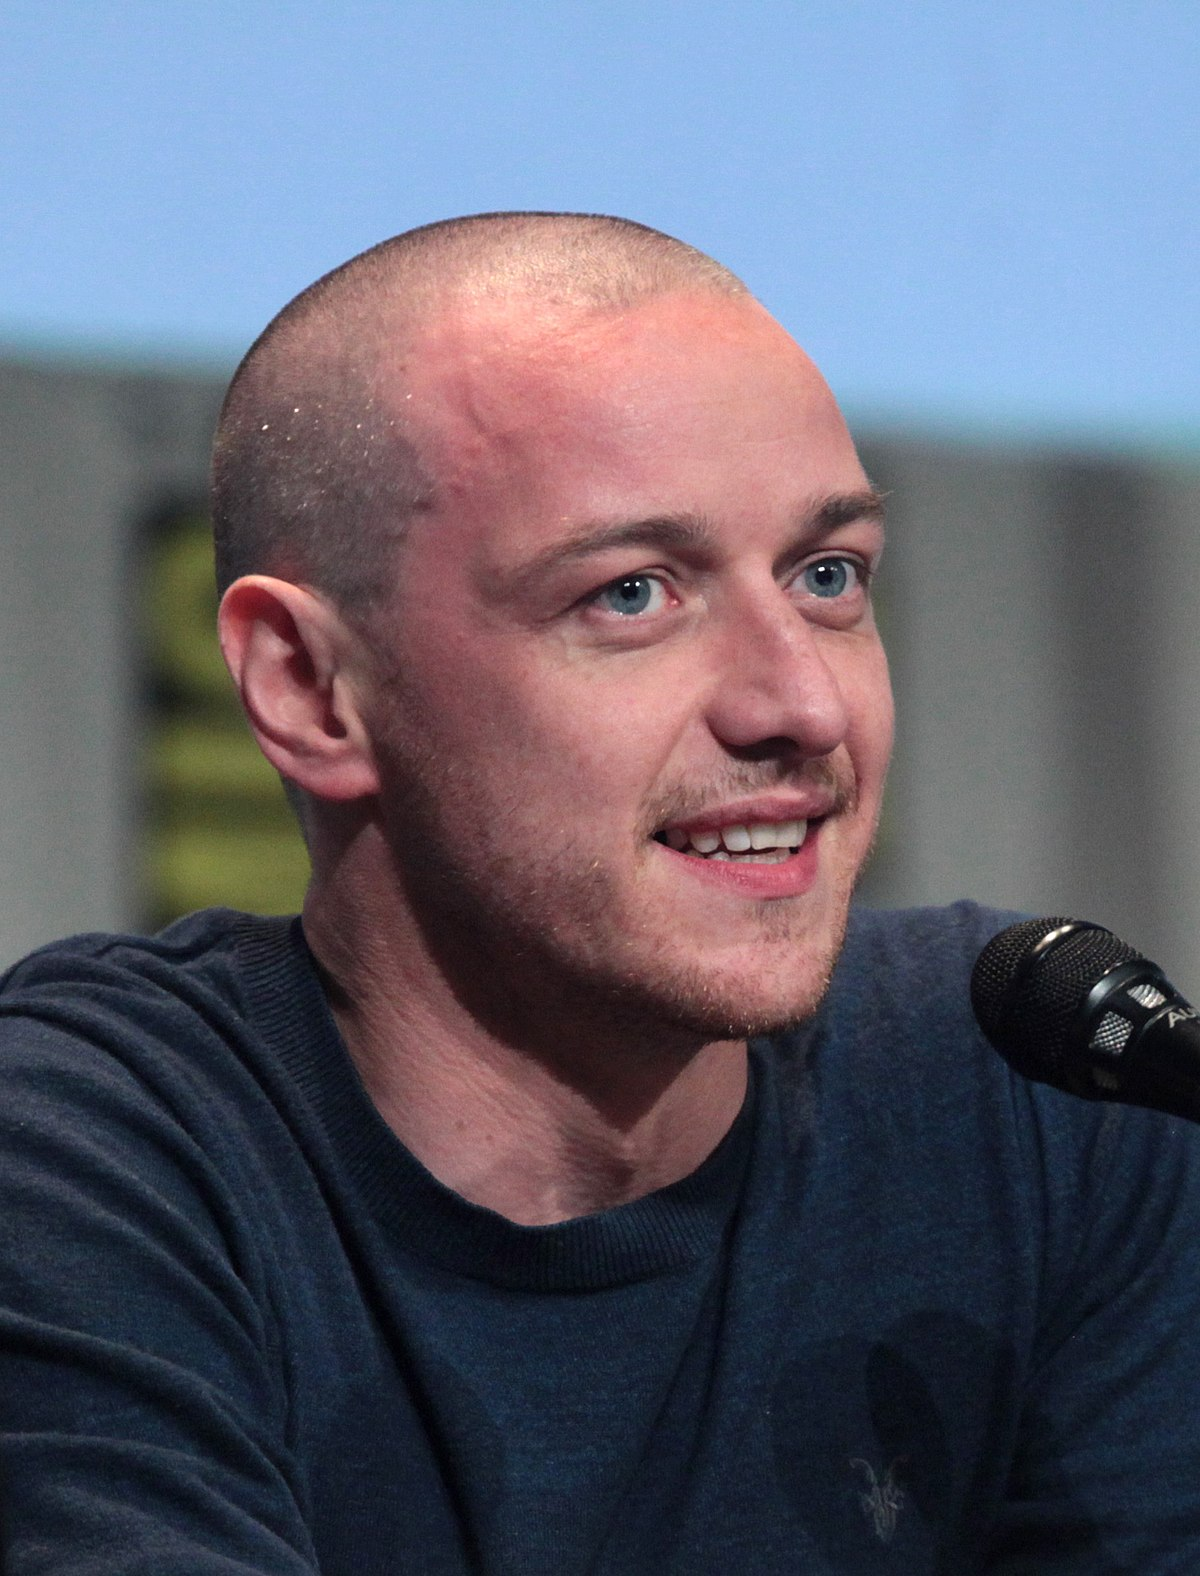 James McAvoy: filmography, biography, photos and interesting facts from the life of the actor 27